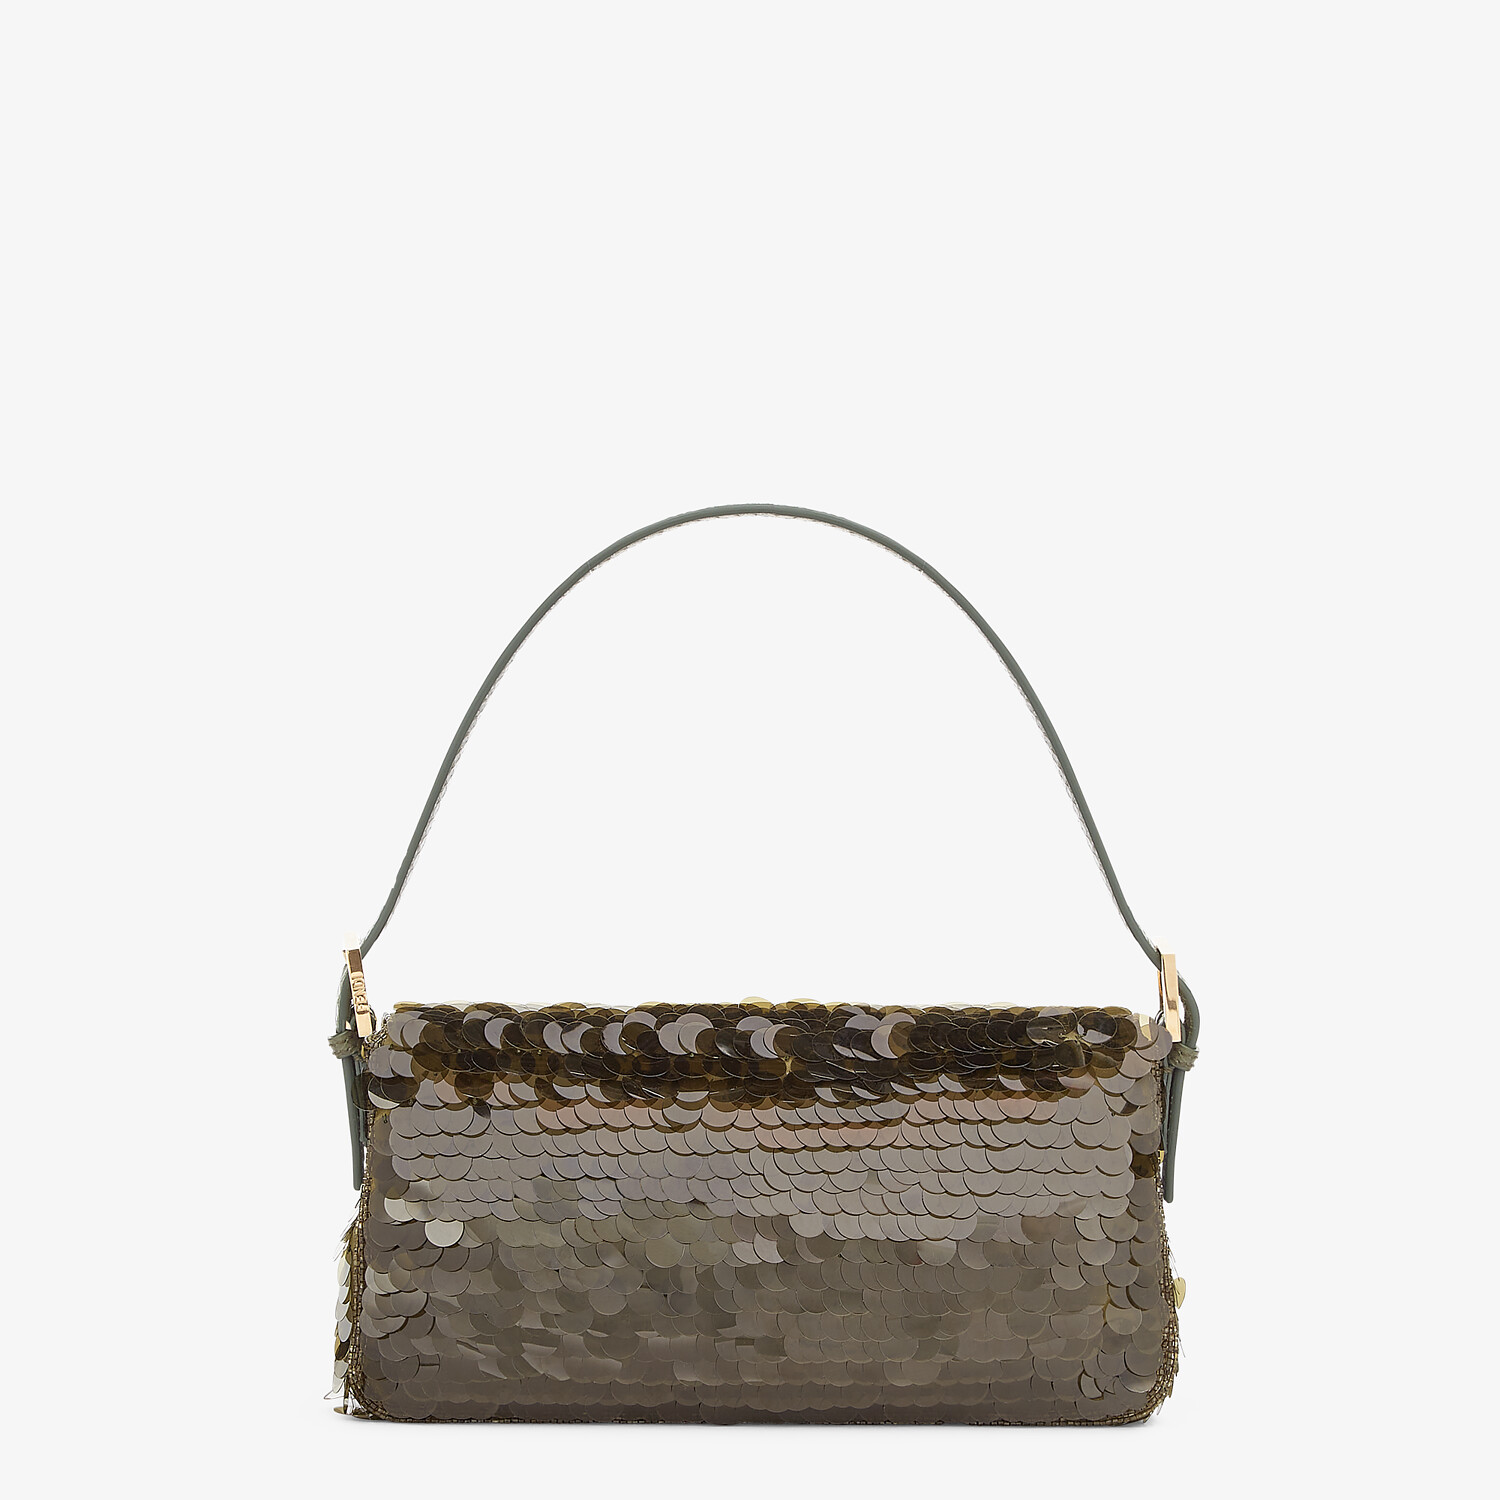 FENDI BAGUETTE 1997 - Green satin bag with sequins - view 3 detail